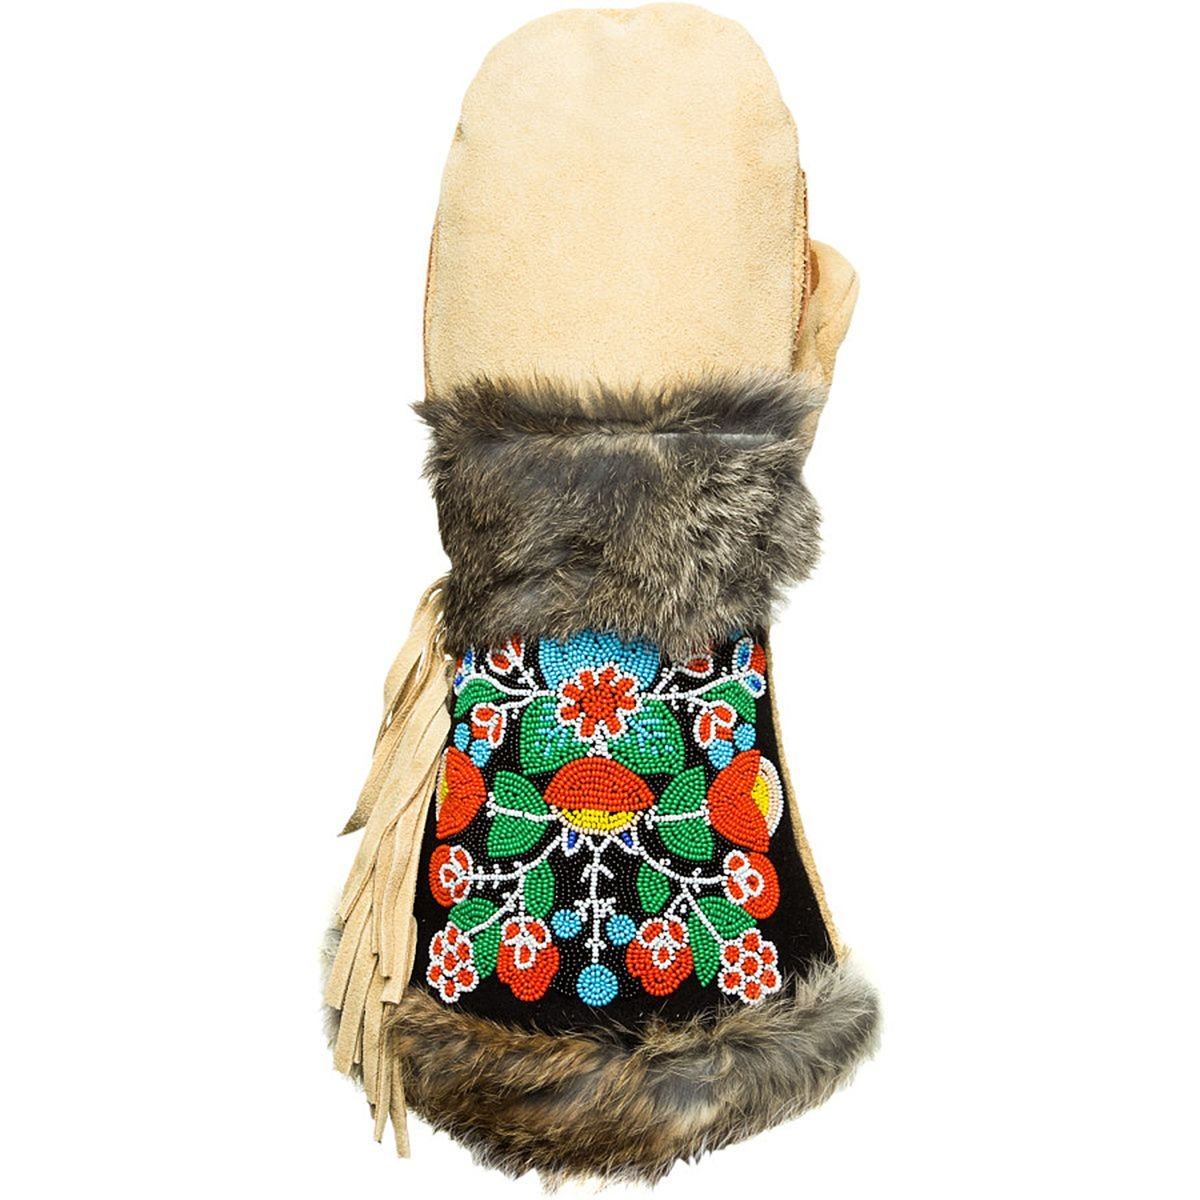 Astis Sacagawea Mitten Tan Small by Astis